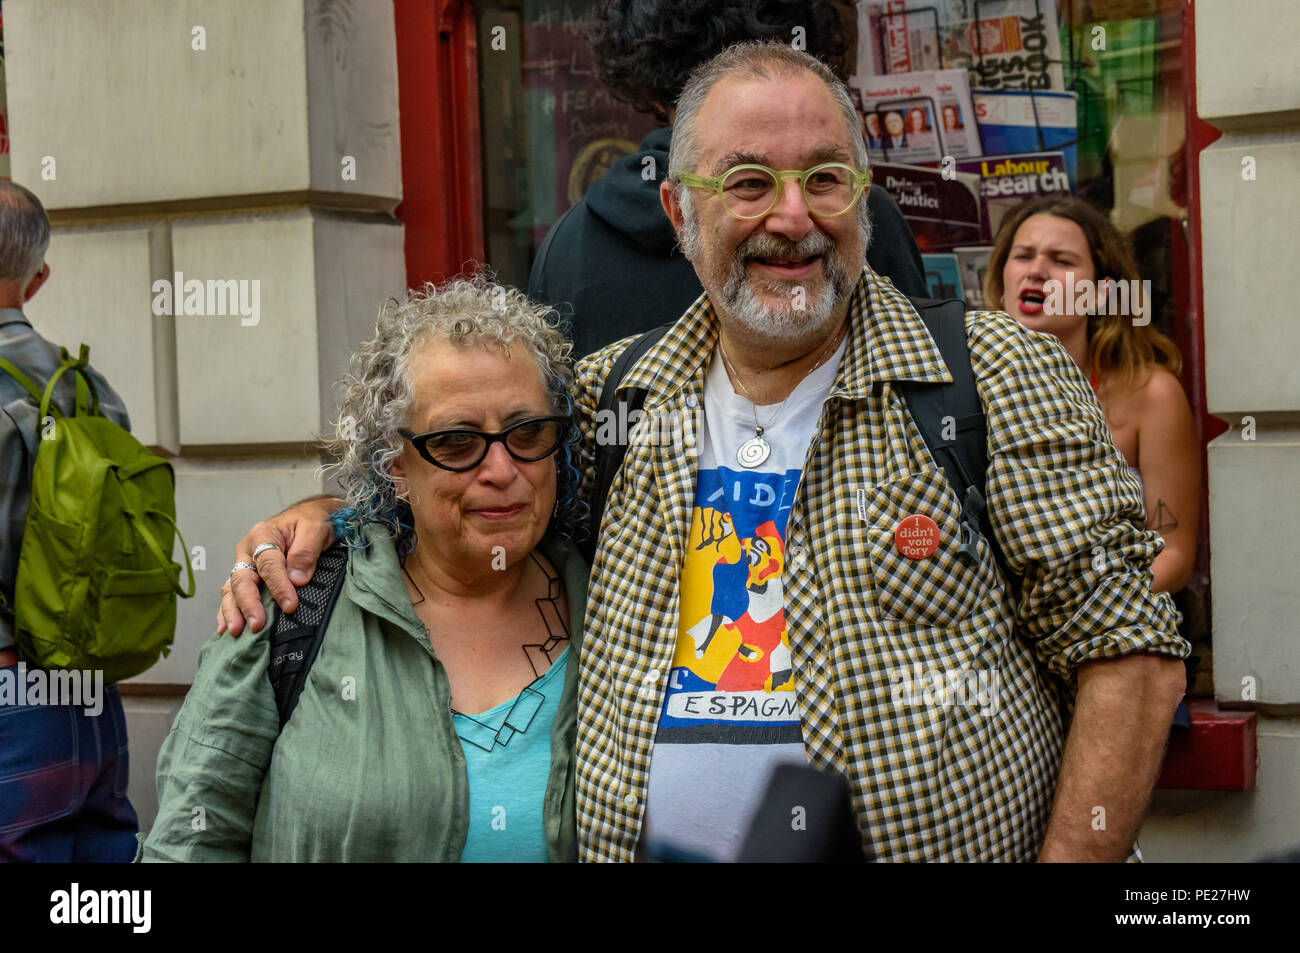 London, UK. 11th August 2018. 11th August 2018. East End Historian David Rosenberg outside Bookmarks, where several hundred people from all parts of the labour movement come to show solidarity and support the socialist bookshop a week after a group of Nazi thugs from 'Make Britain Great Again' invaded the shop in central London, shouting racist slogans and wrecking book displays. Credit: ZUMA Press, Inc./Alamy Live News - Stock Image